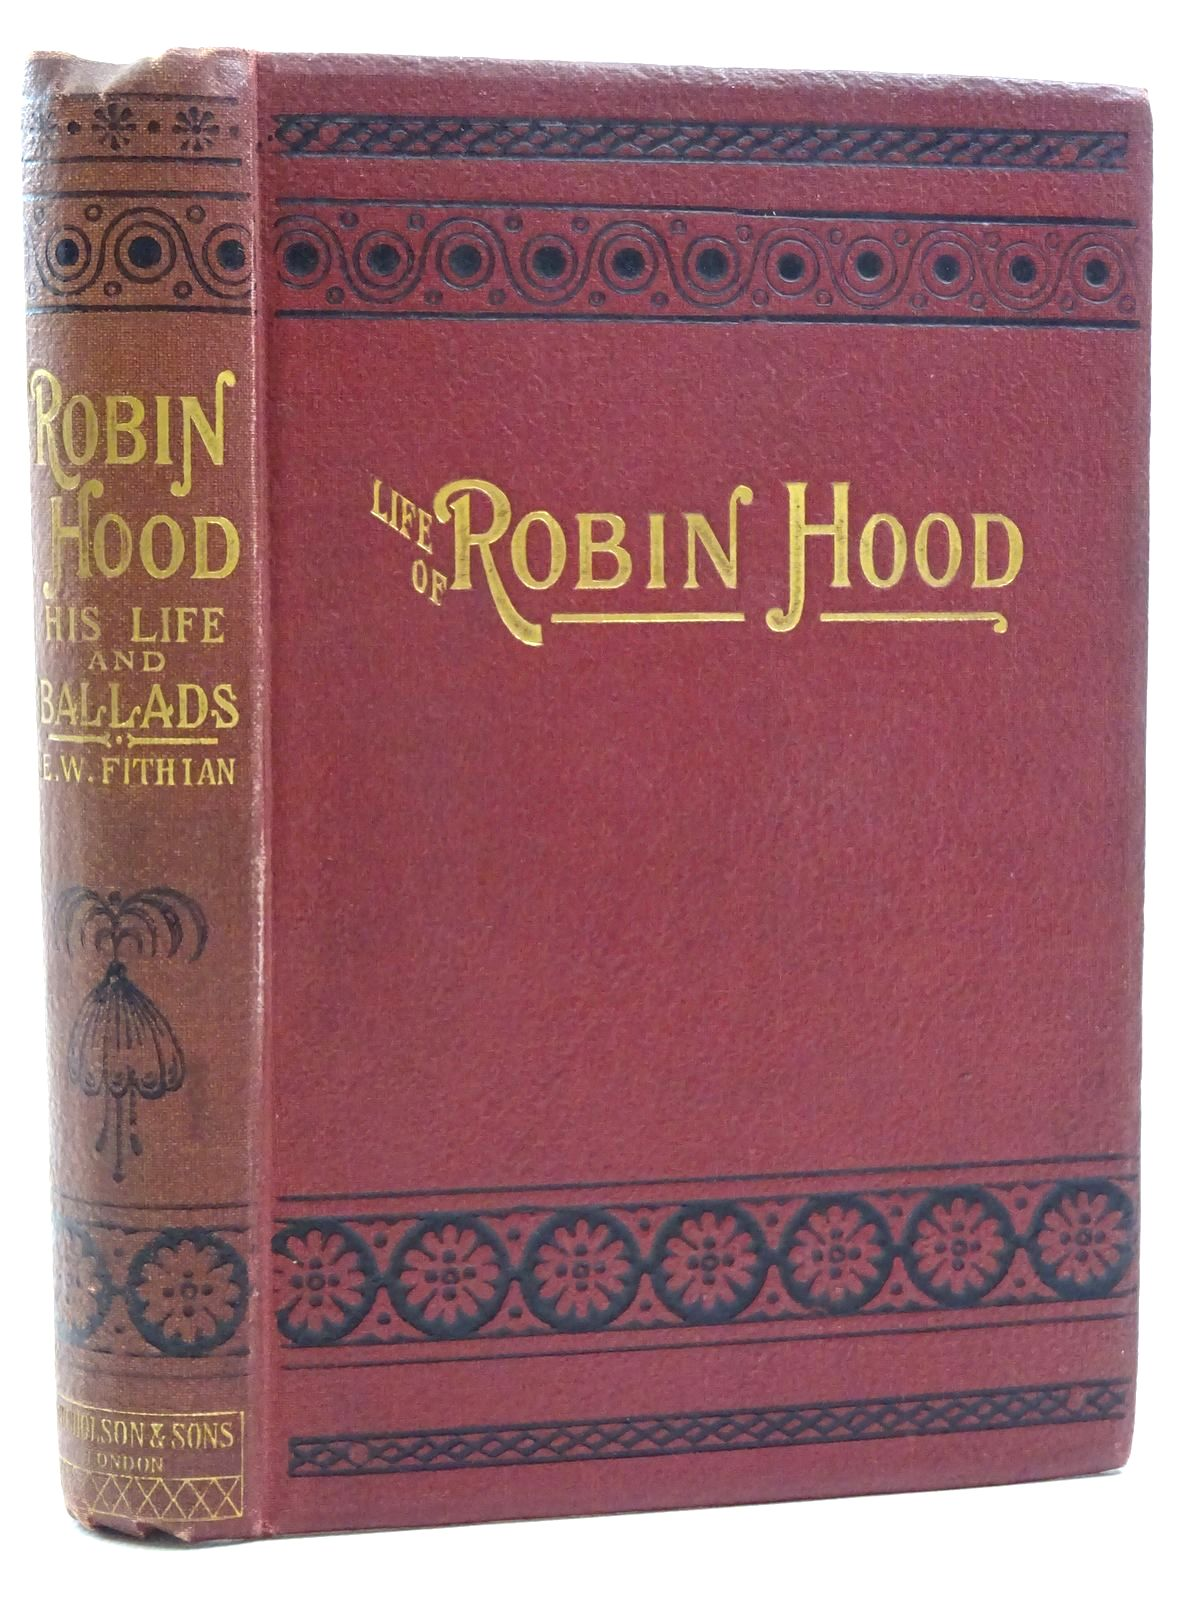 Photo of THE LIFE OF ROBIN HOOD, THE CELEBRATED OUTLAW written by Fithian, Edward William published by W. Nicholson & Sons Ltd. (STOCK CODE: 2125185)  for sale by Stella & Rose's Books